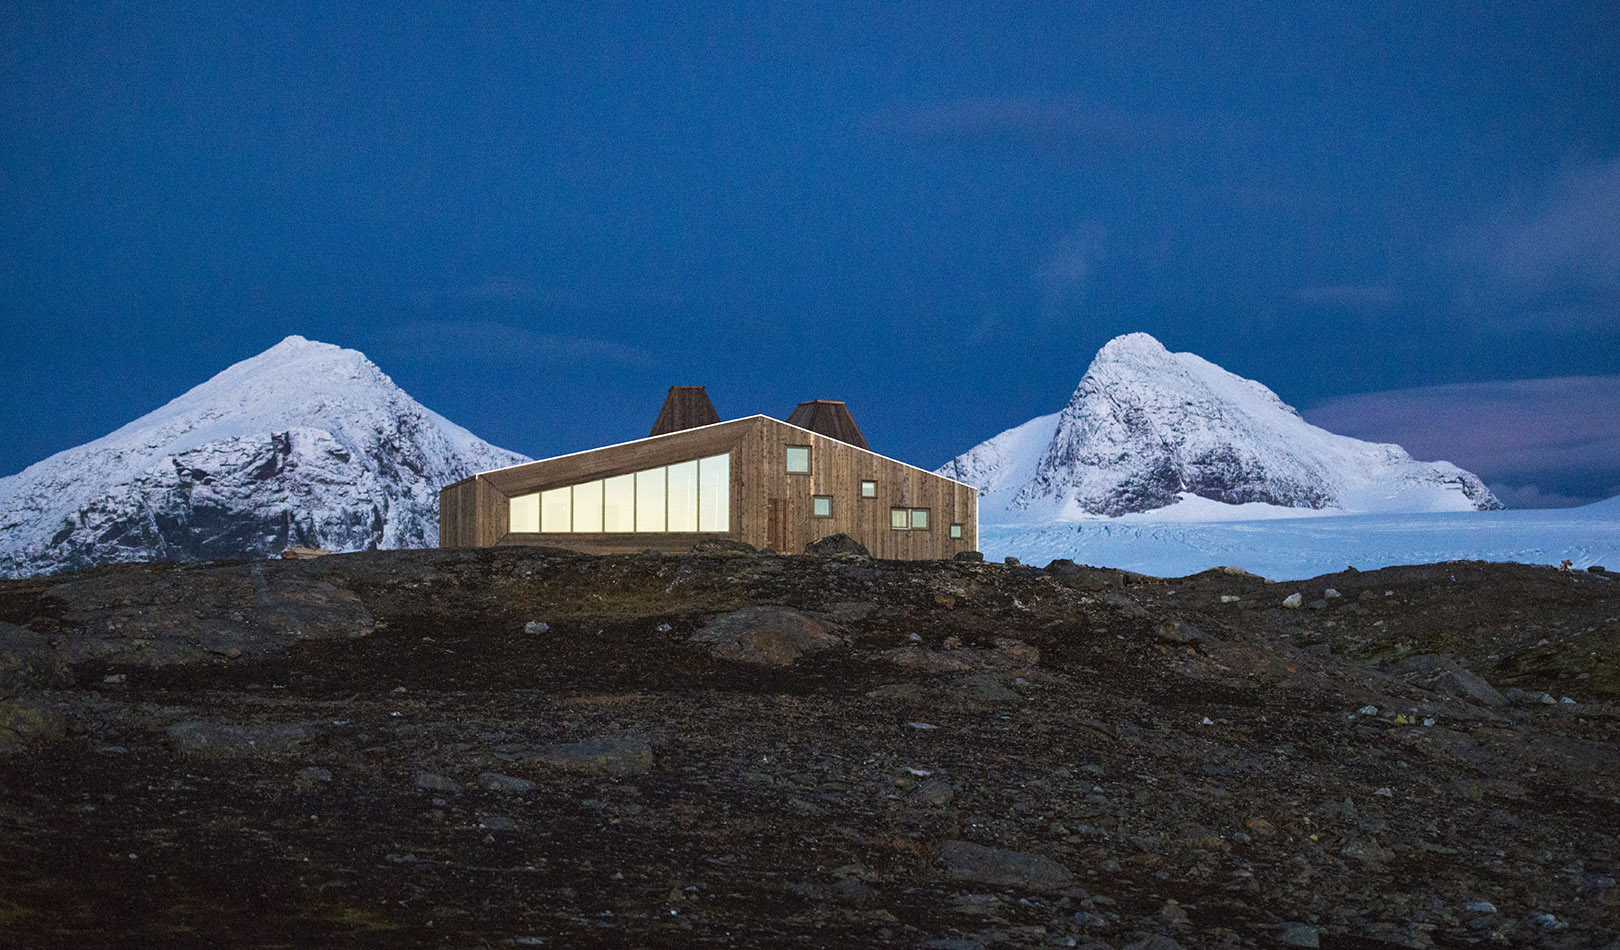 The Rabot tourist cabin was designed by architects and built for the Norwegian Trekking Association